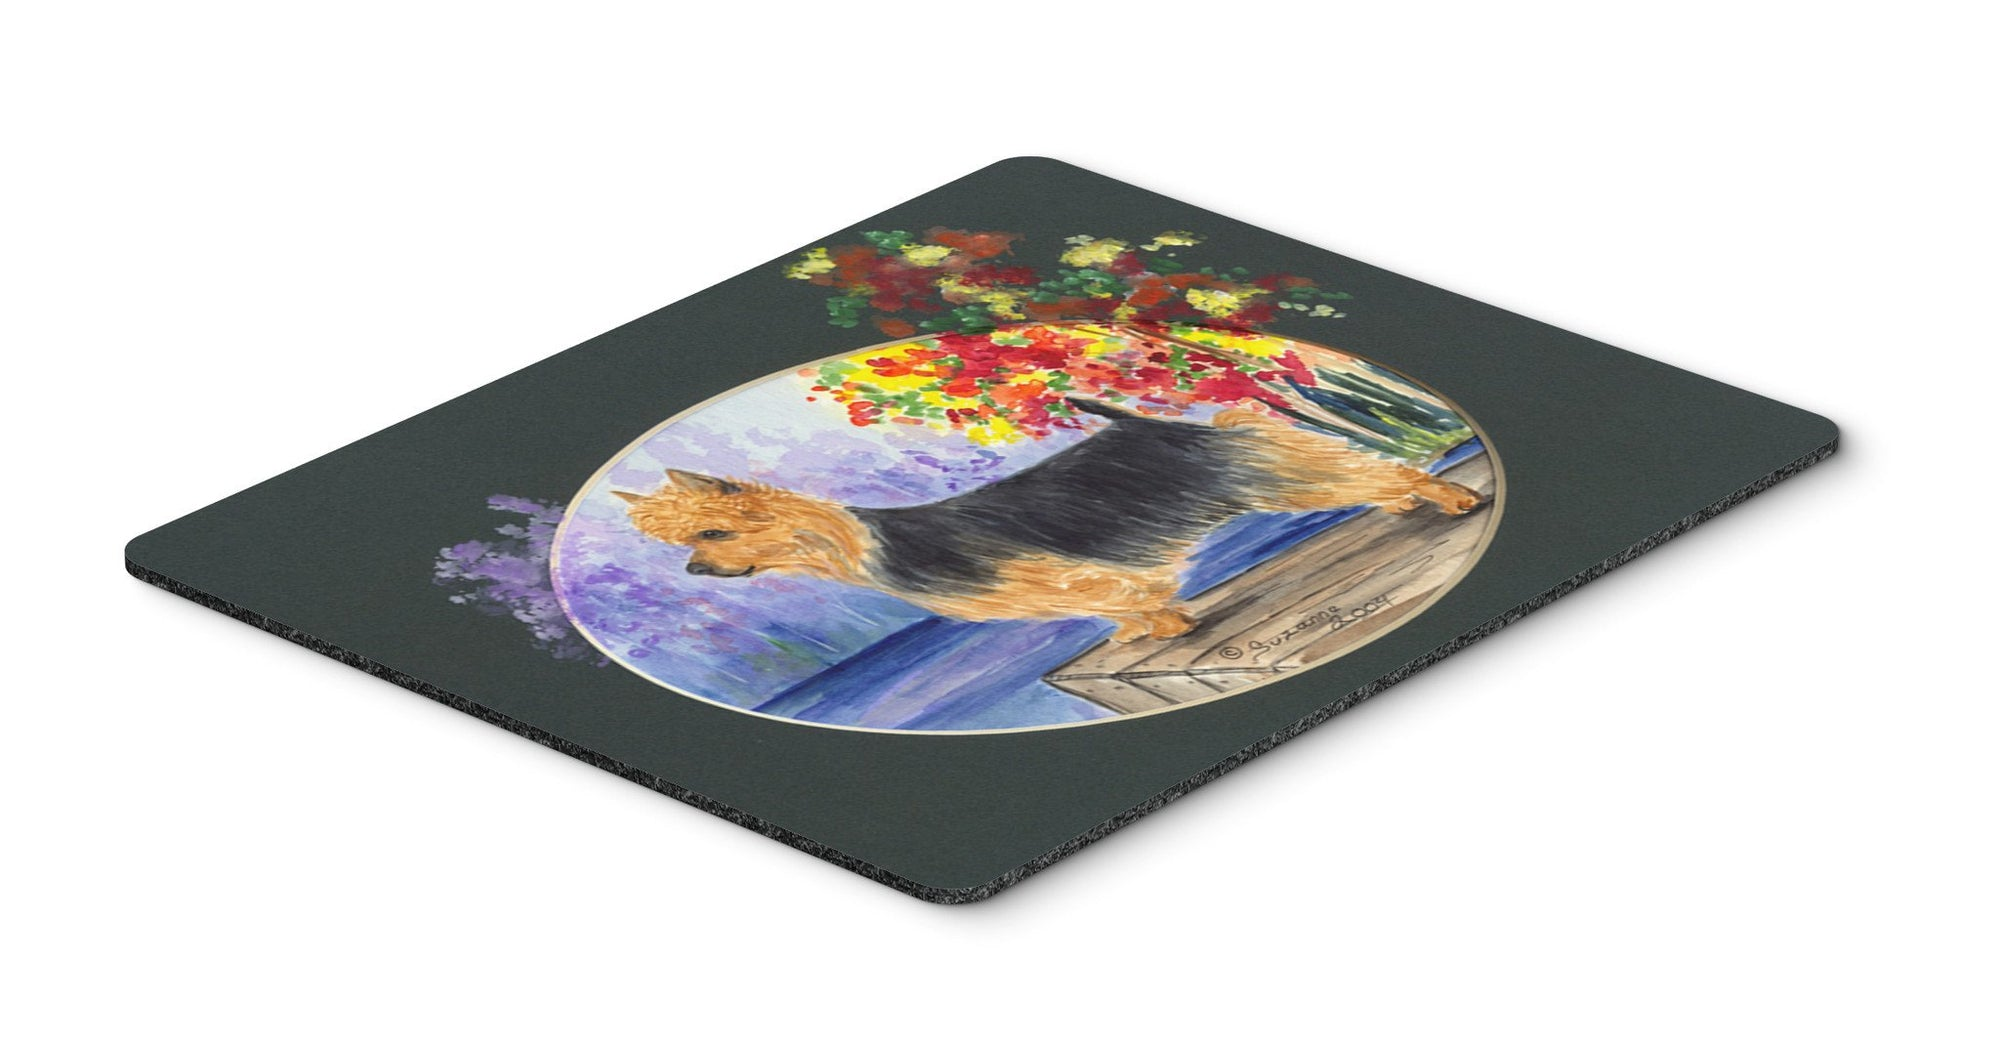 Australian Terrier Mouse Pad / Hot Pad / Trivet by Caroline's Treasures